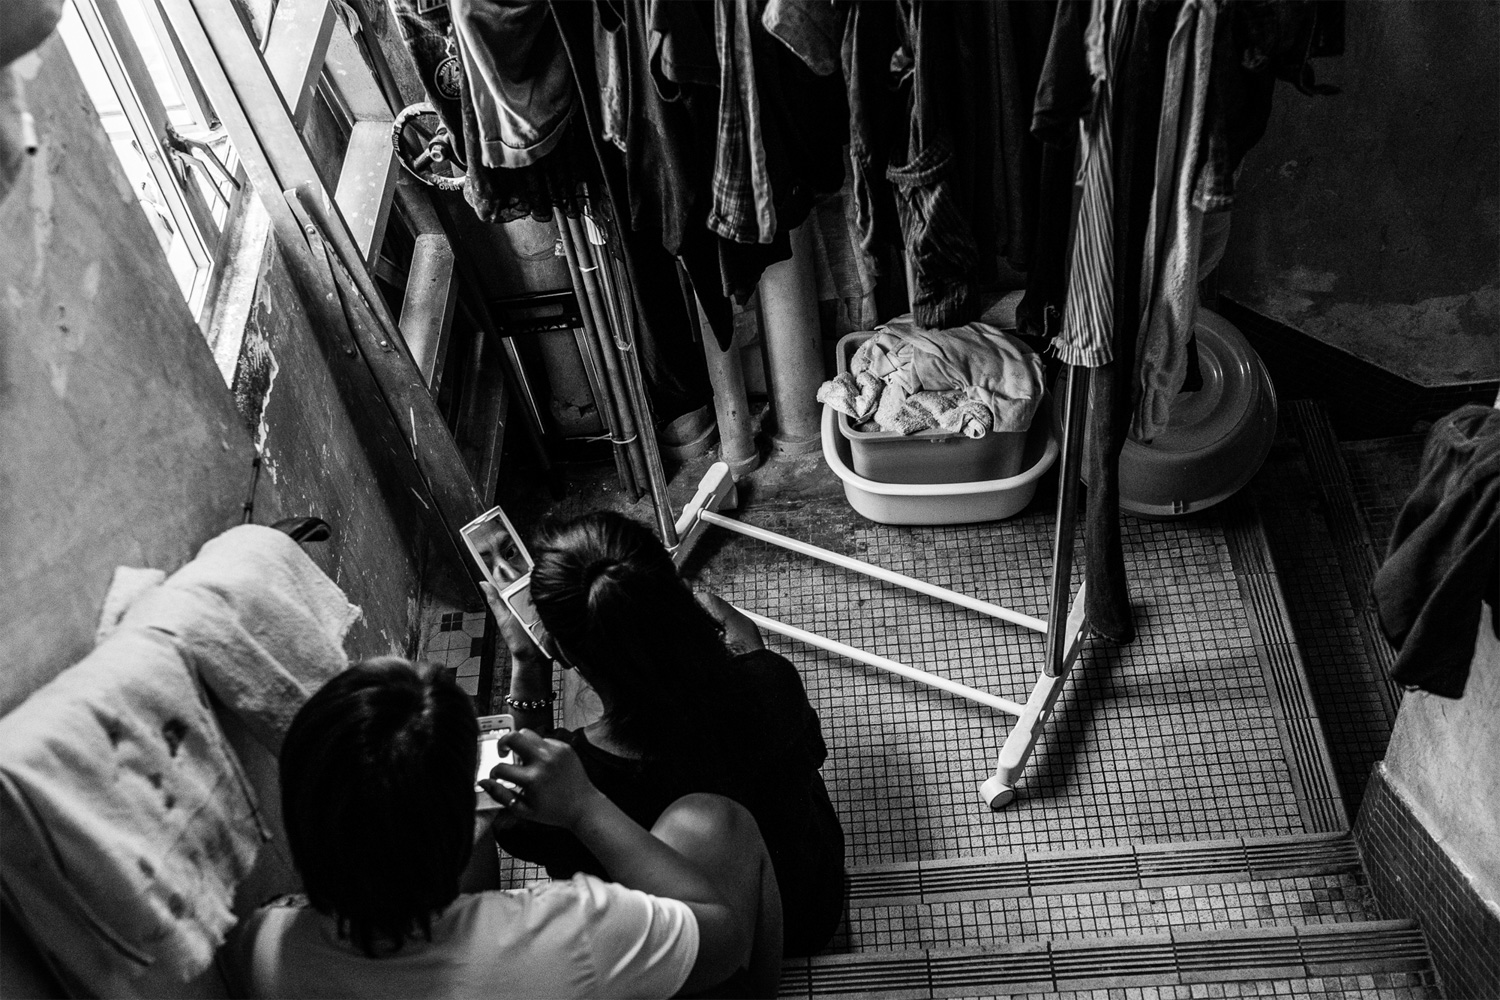 Sunarwi, left, and Kuryati, Indonesian domestic workers, take a break in the back staircase of the shelter. Most Indonesian workers complain that they are underpaid. According to Bethune House staff, Indonesians are paid less than other nationalities, and their income often falls below the minimum allowable wage level set by the Hong Kong government.